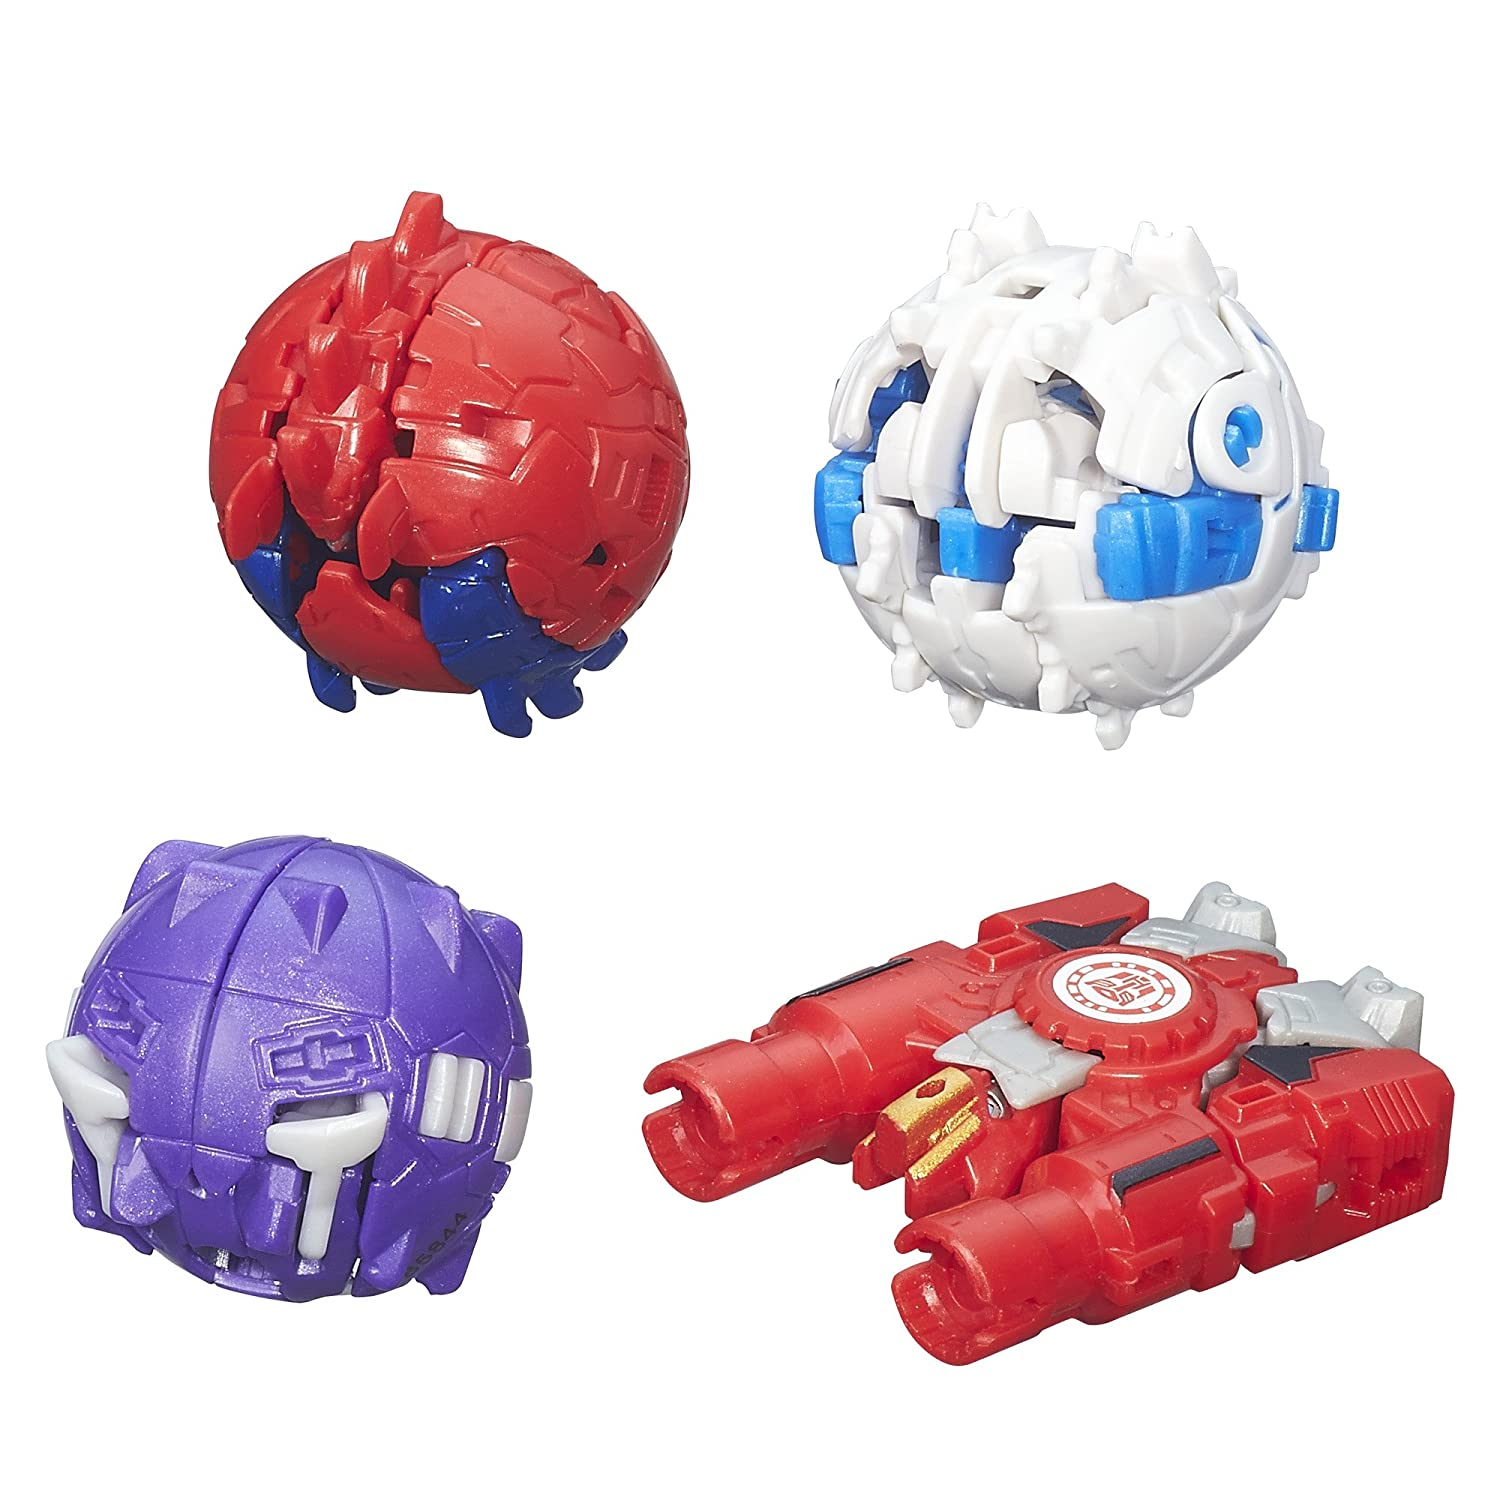 Transformers Robots in Disguise Mini-Con 4 Pack Hasbro B5844AF0 Hammer, Undertone, Anvil, and Slipstream